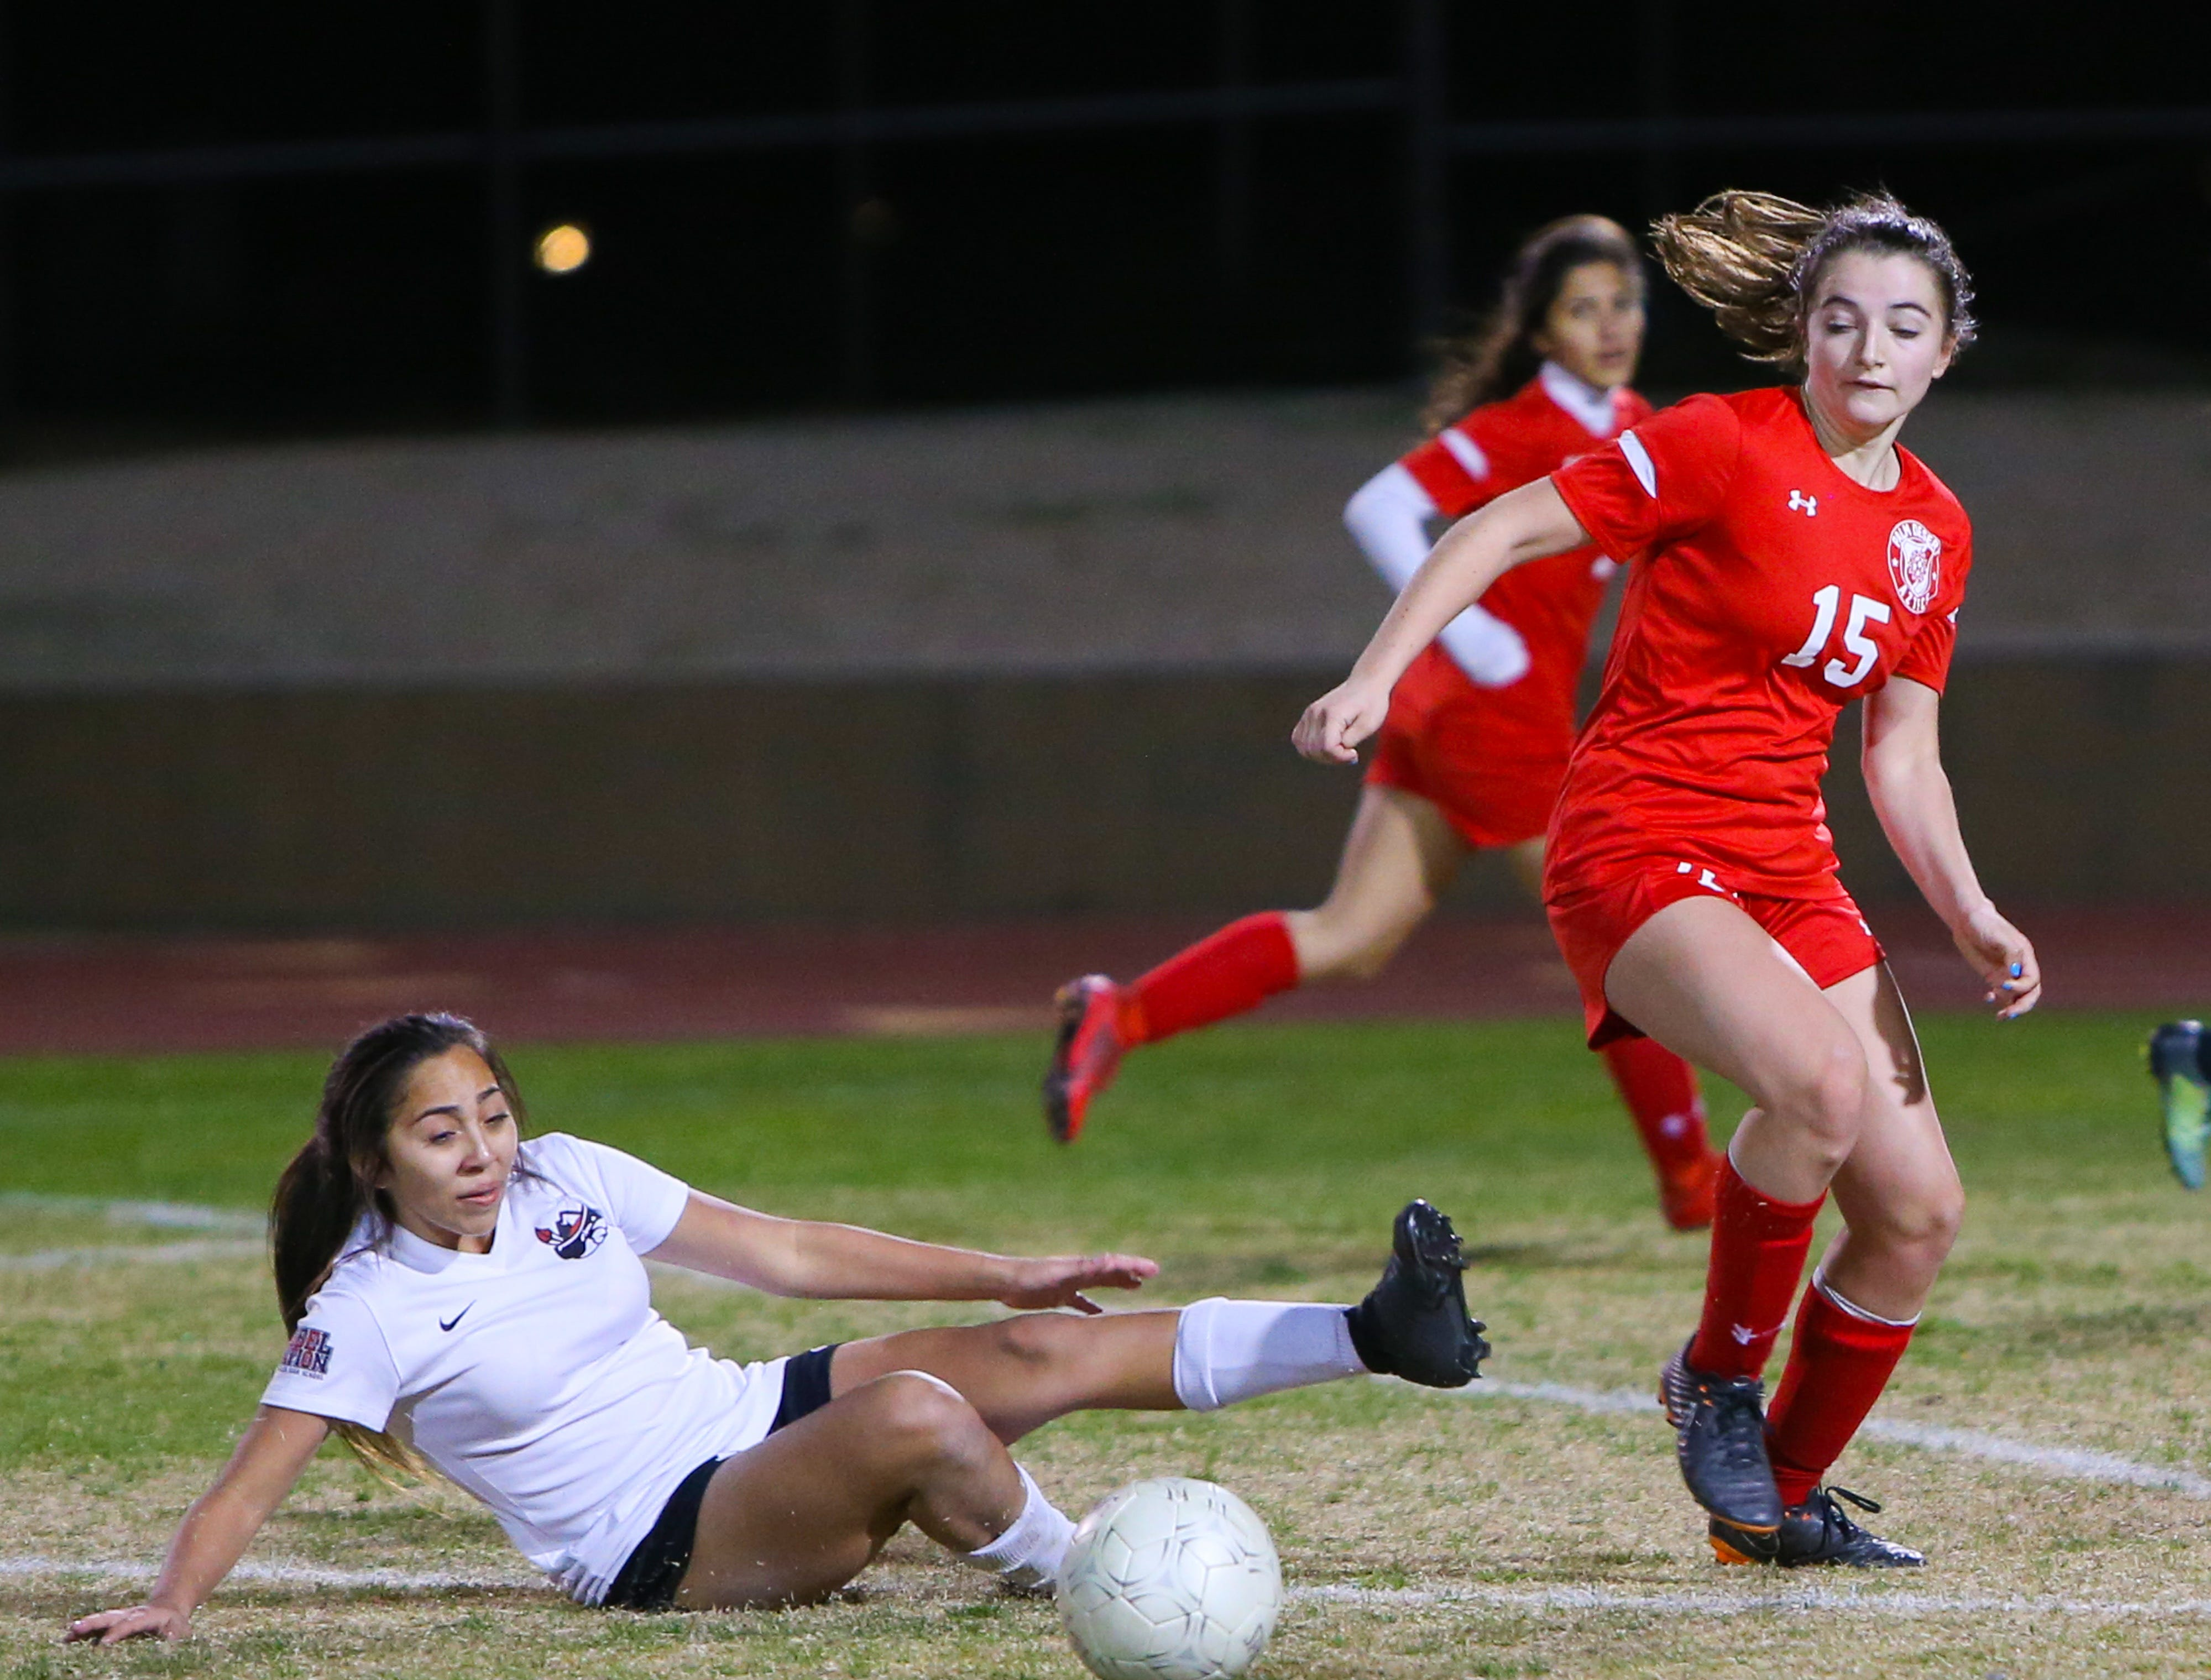 Malia Falk takes the ball from an AB Miller player. The Palm Desert varsity soccer team won Wednesday's home playoff game against Miller by a score of 5-1.